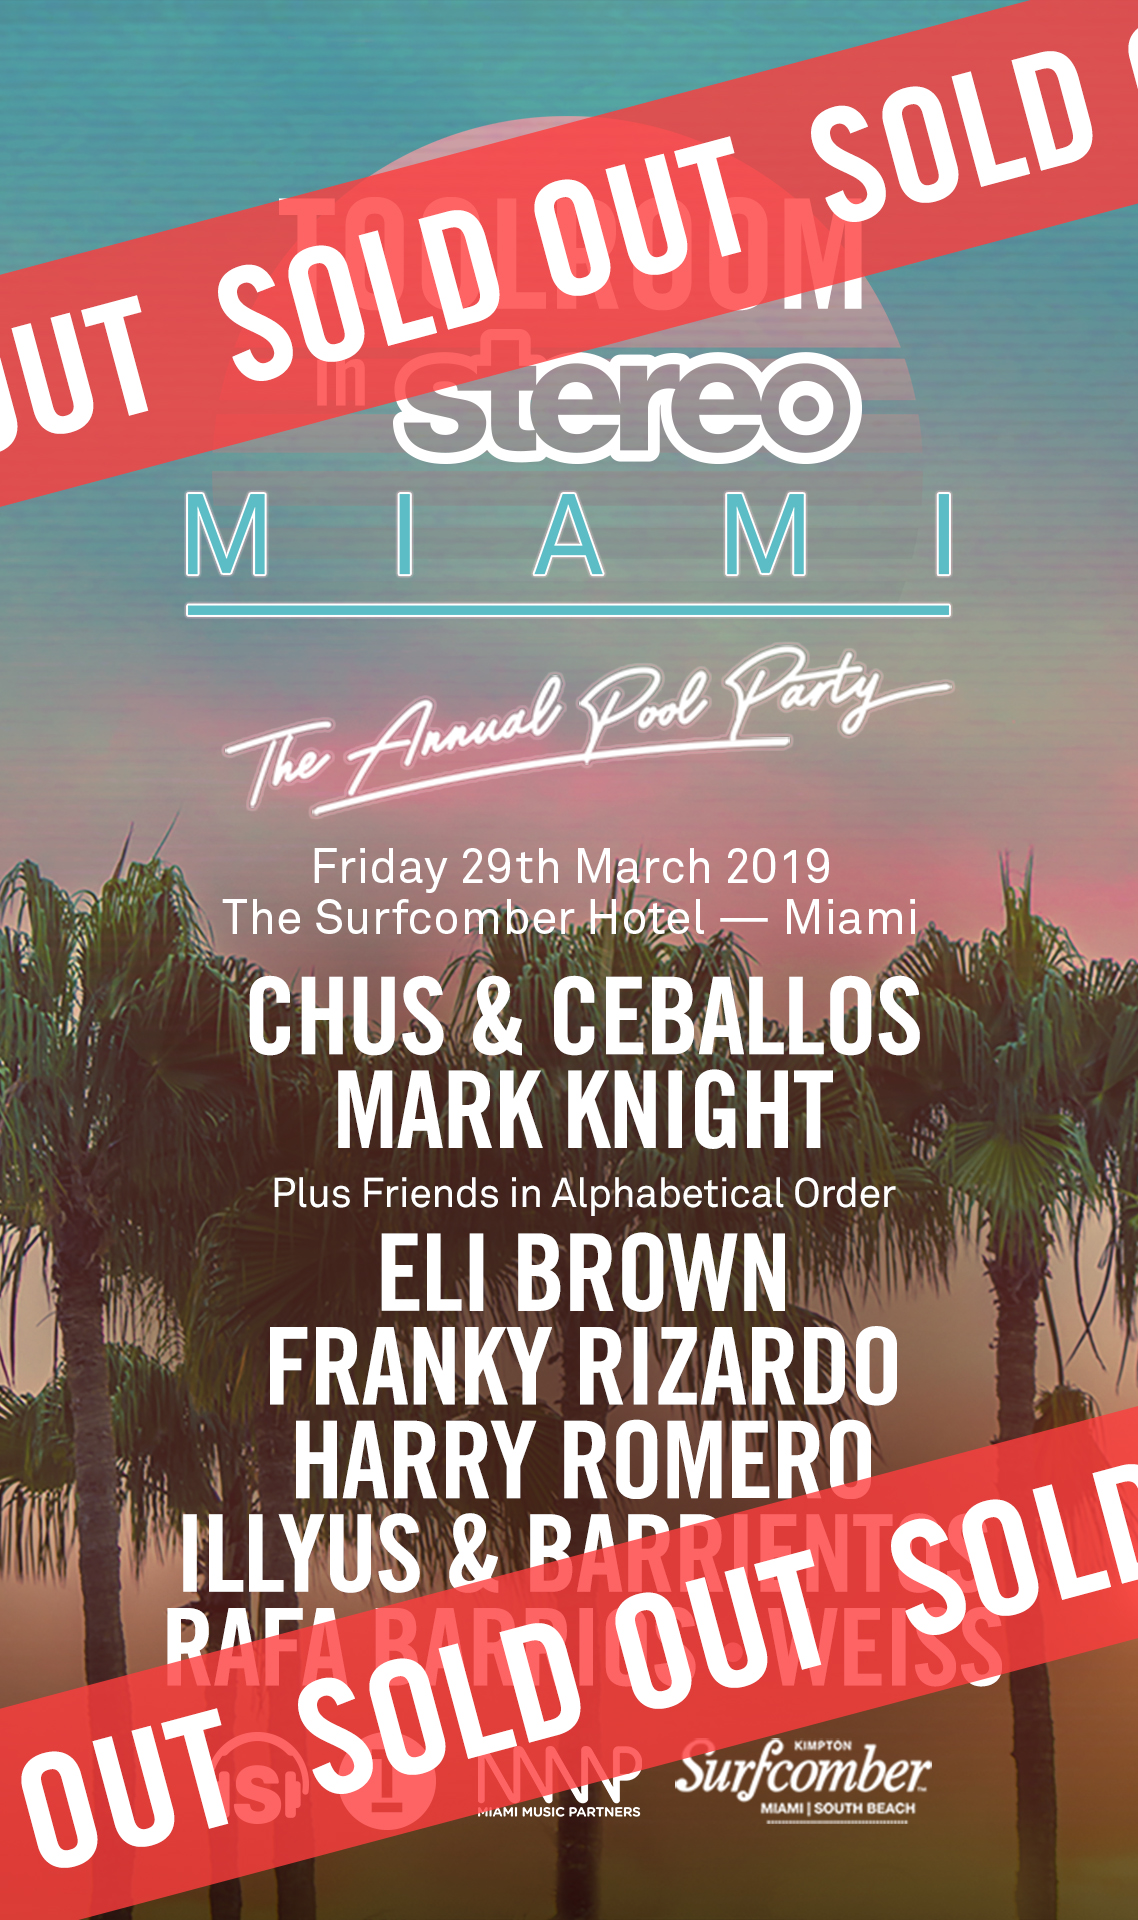 Toolroom in Stereo Miami Image